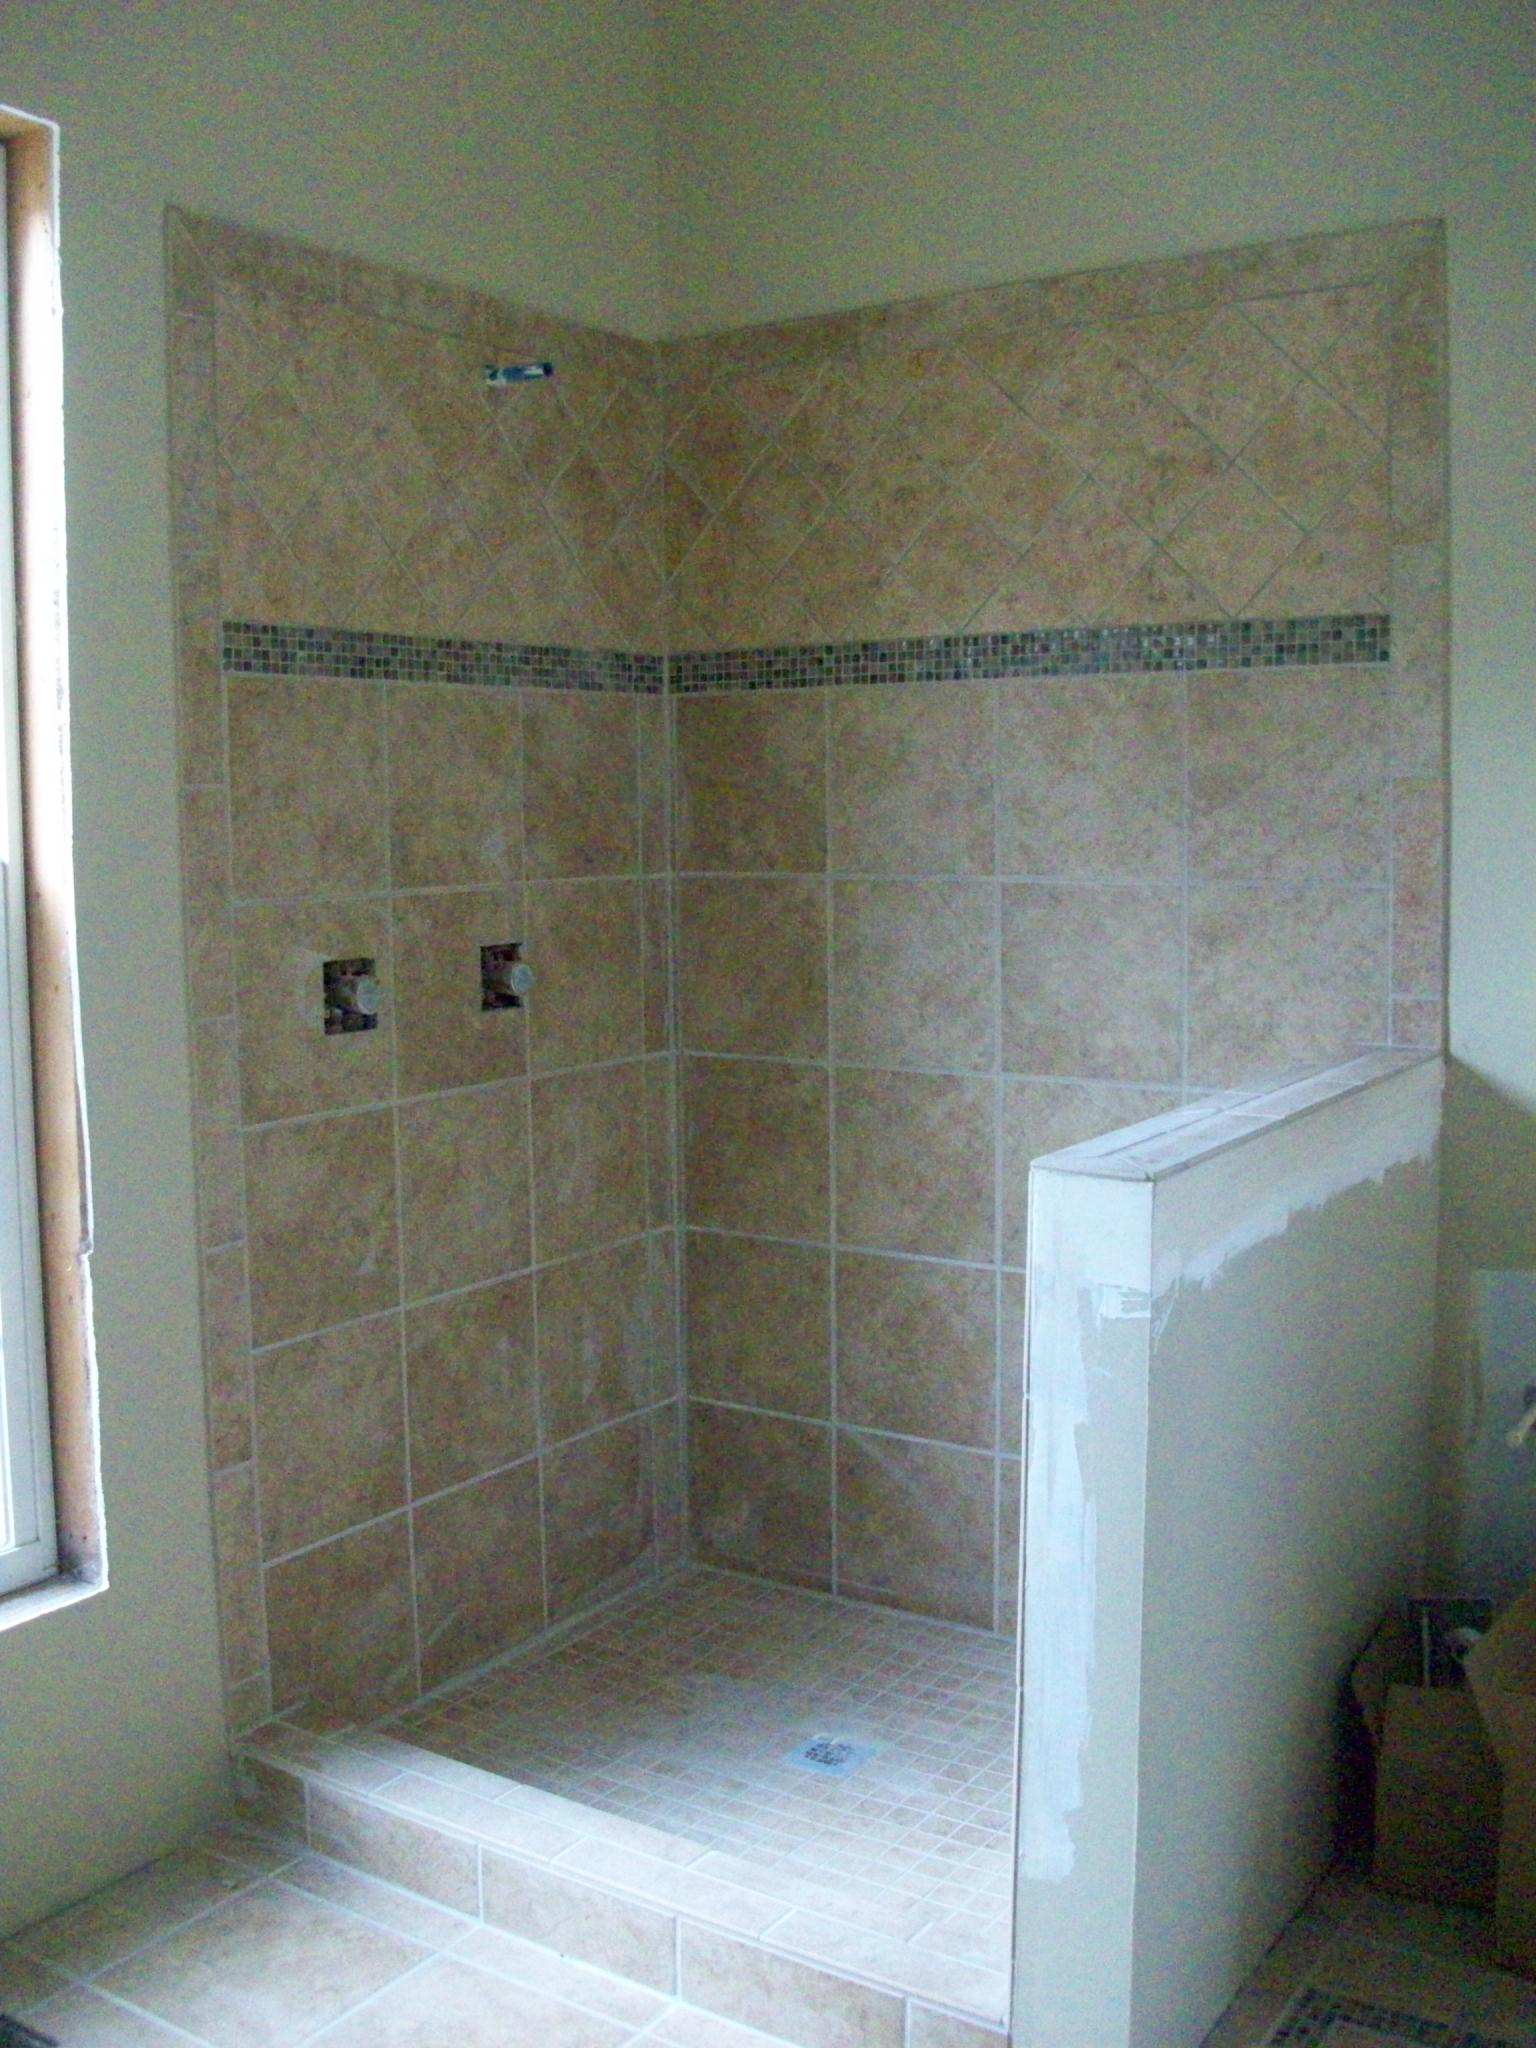 no door shower building with small tiles floor and large ceramic tiled shower  wall. Tiled Shower Stalls  Create Distinctive and Stylish Shower Zone